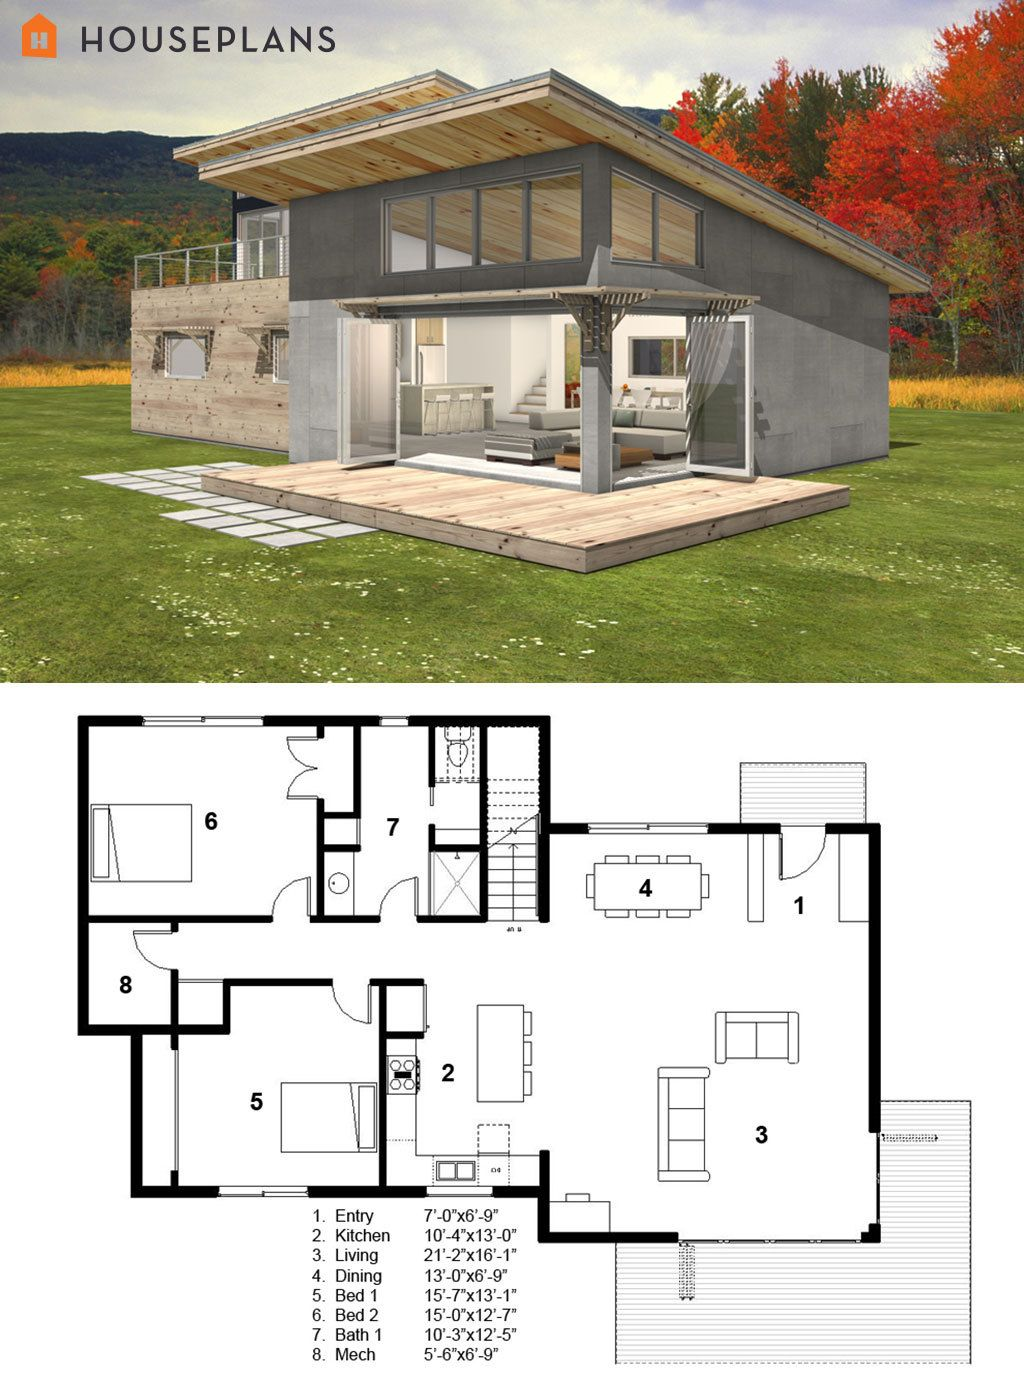 Small modern cabin house plan by freegreen energy efficient house plans pinterest cabin - Small modern house plans ...